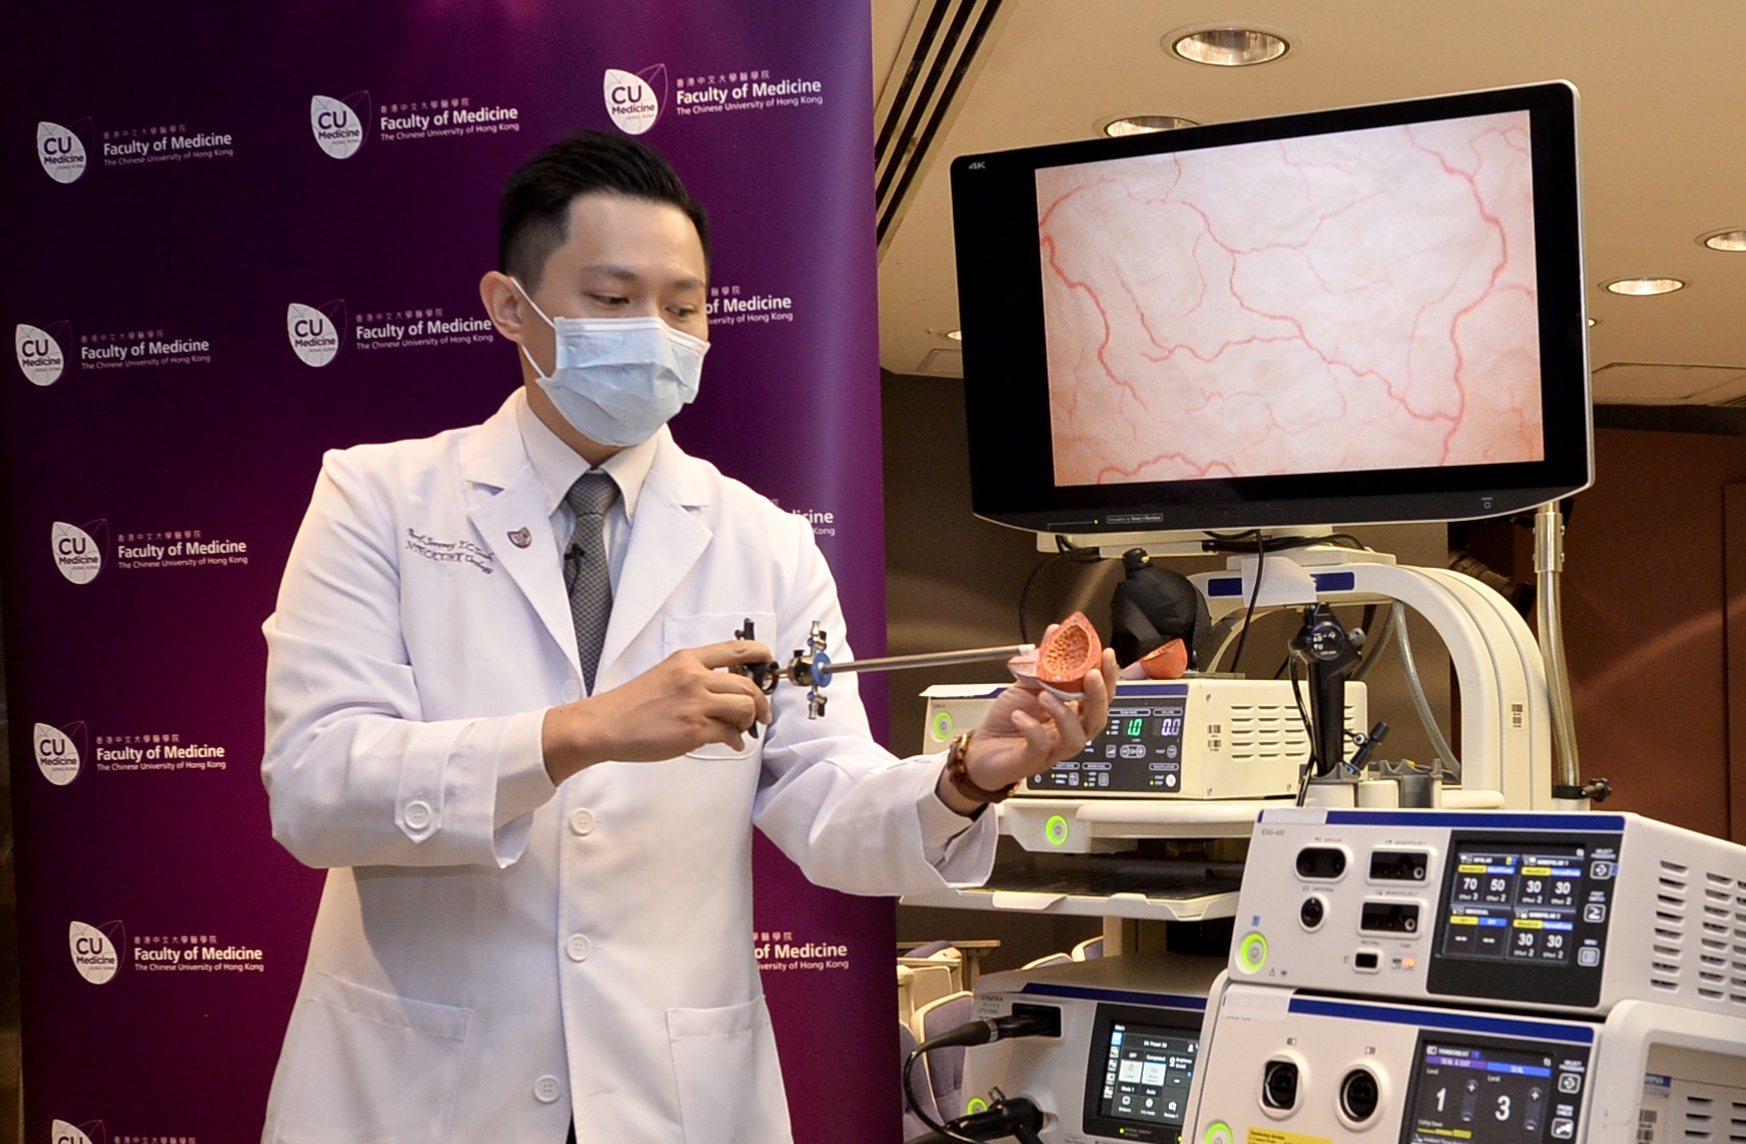 Dr. Jeremy Yuen Chun TEOH says en bloc resection of bladder tumour allows resection of the tumour in one piece and avoid tumour fragmentation, thus minimising the risk of tumour recurrence.